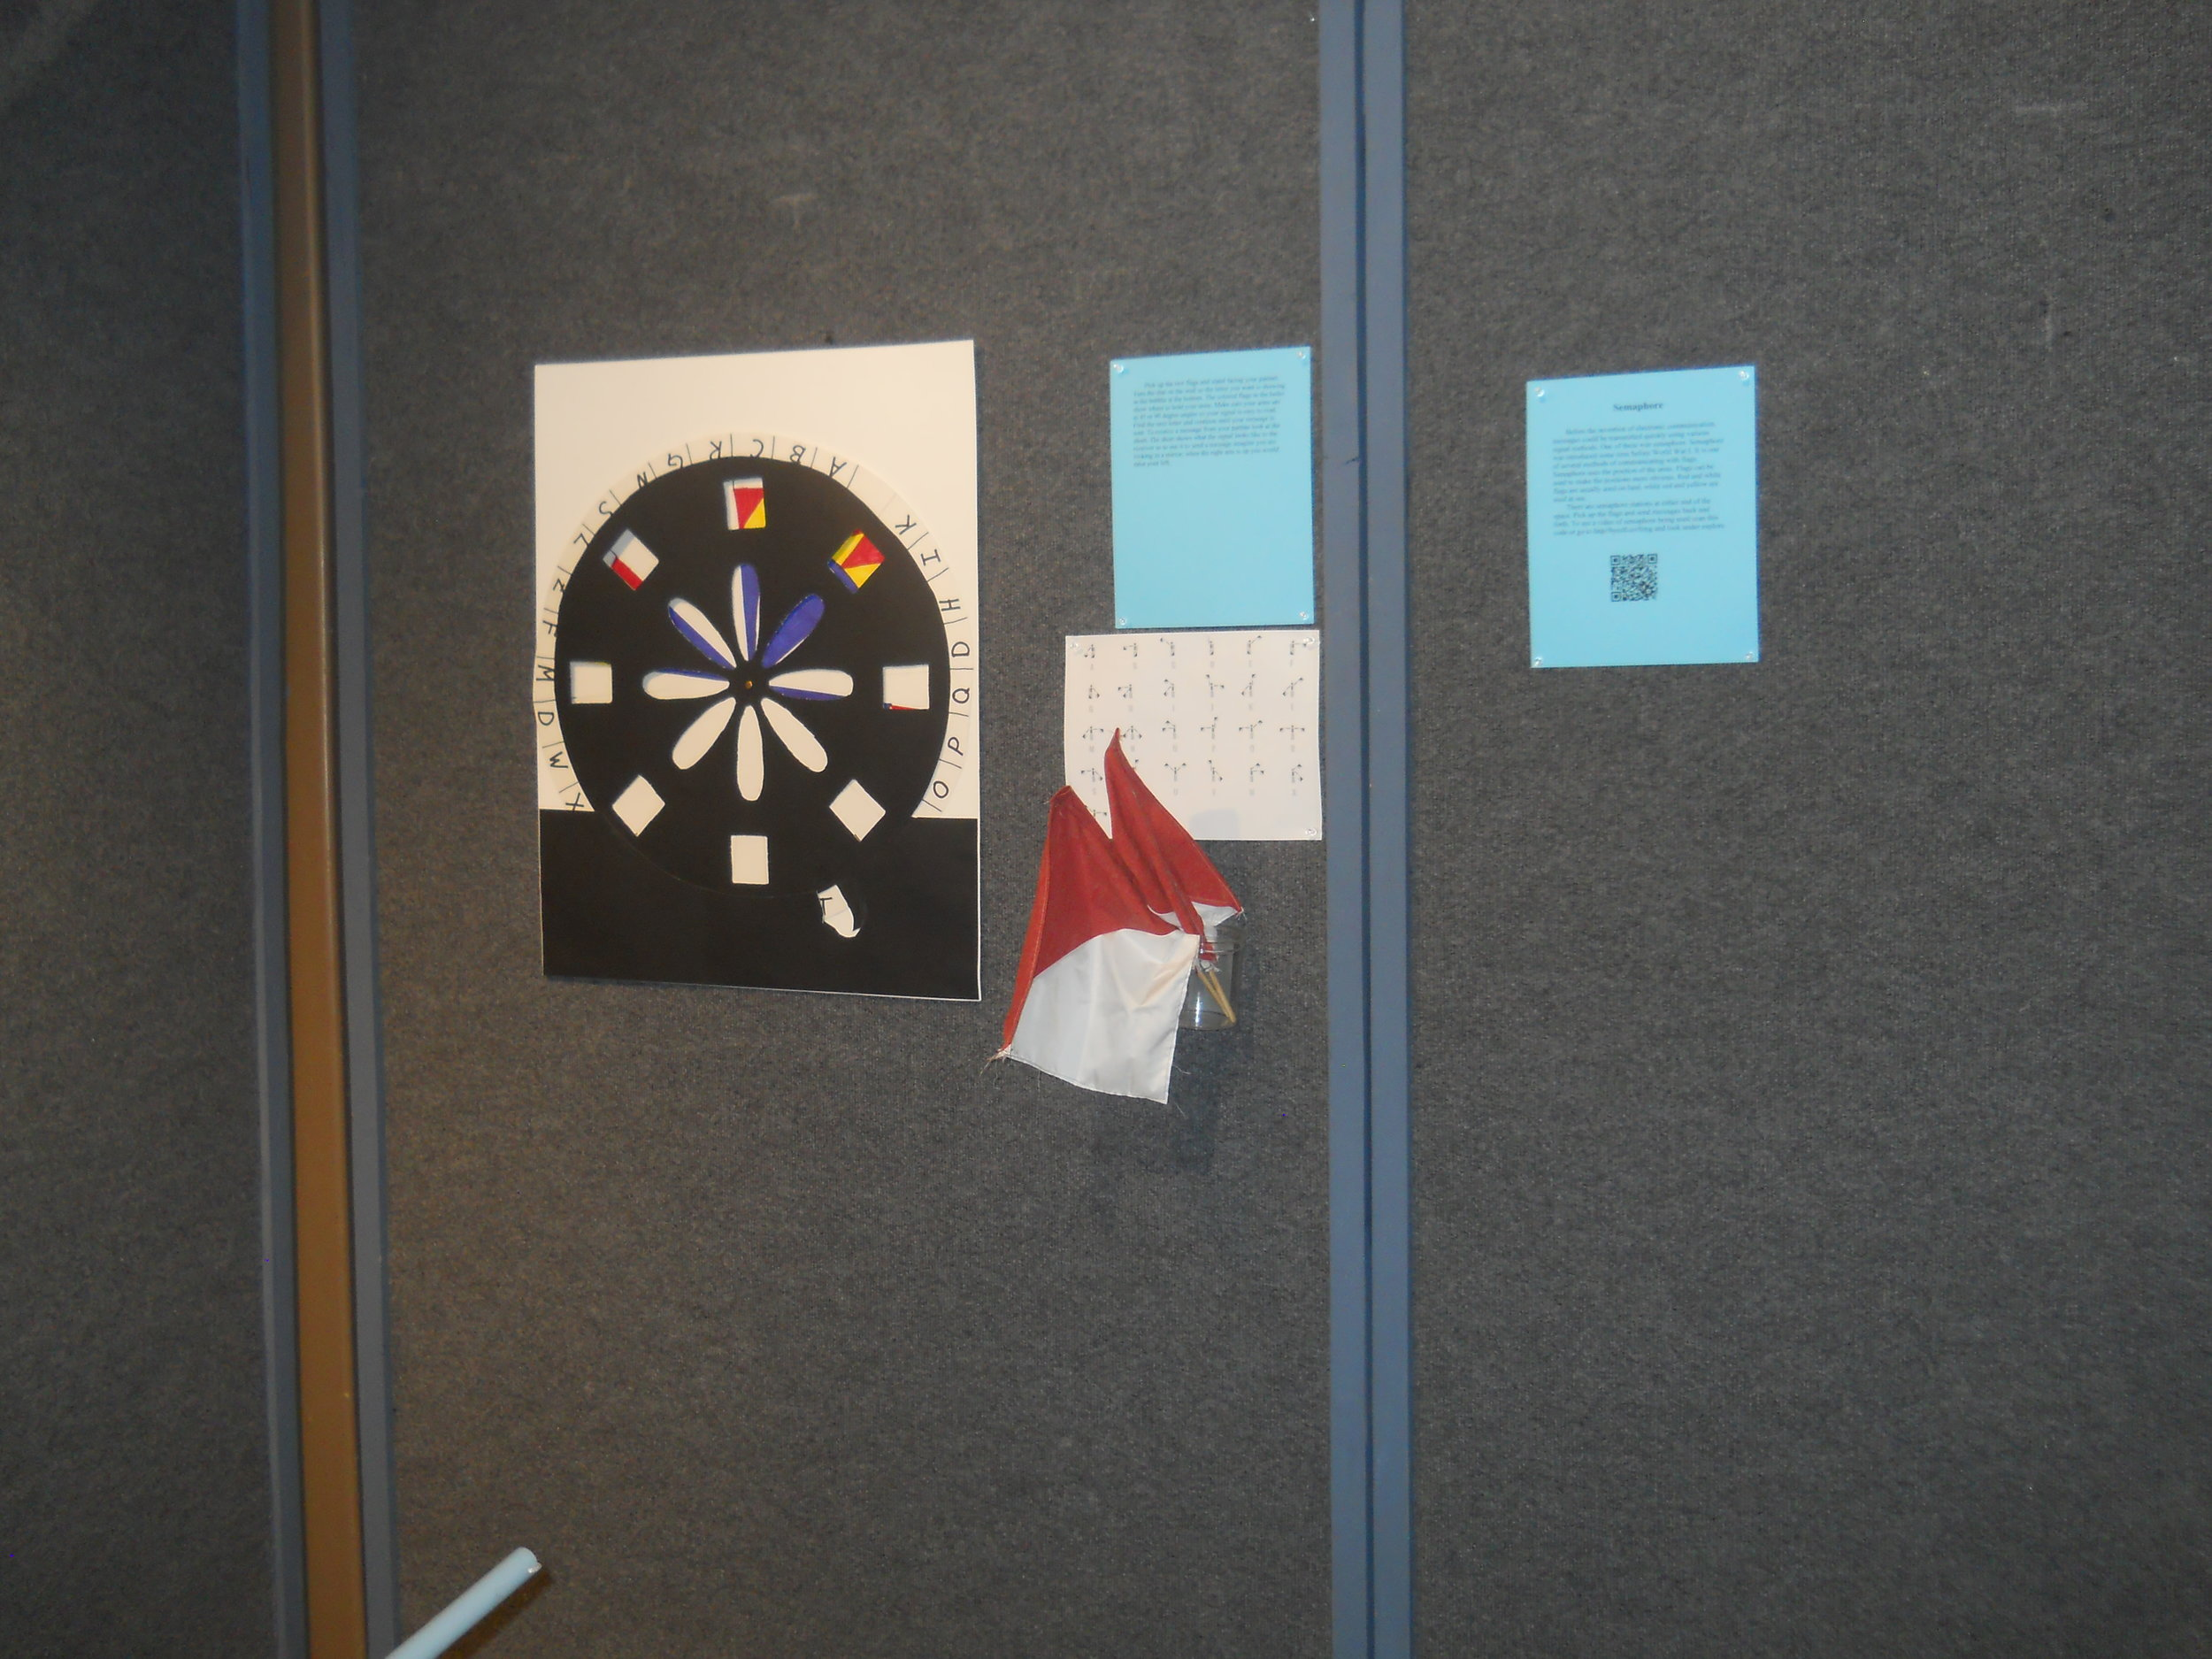 Semaphore - Turn the dial to learn how to send messages long distances using flags or your arms.